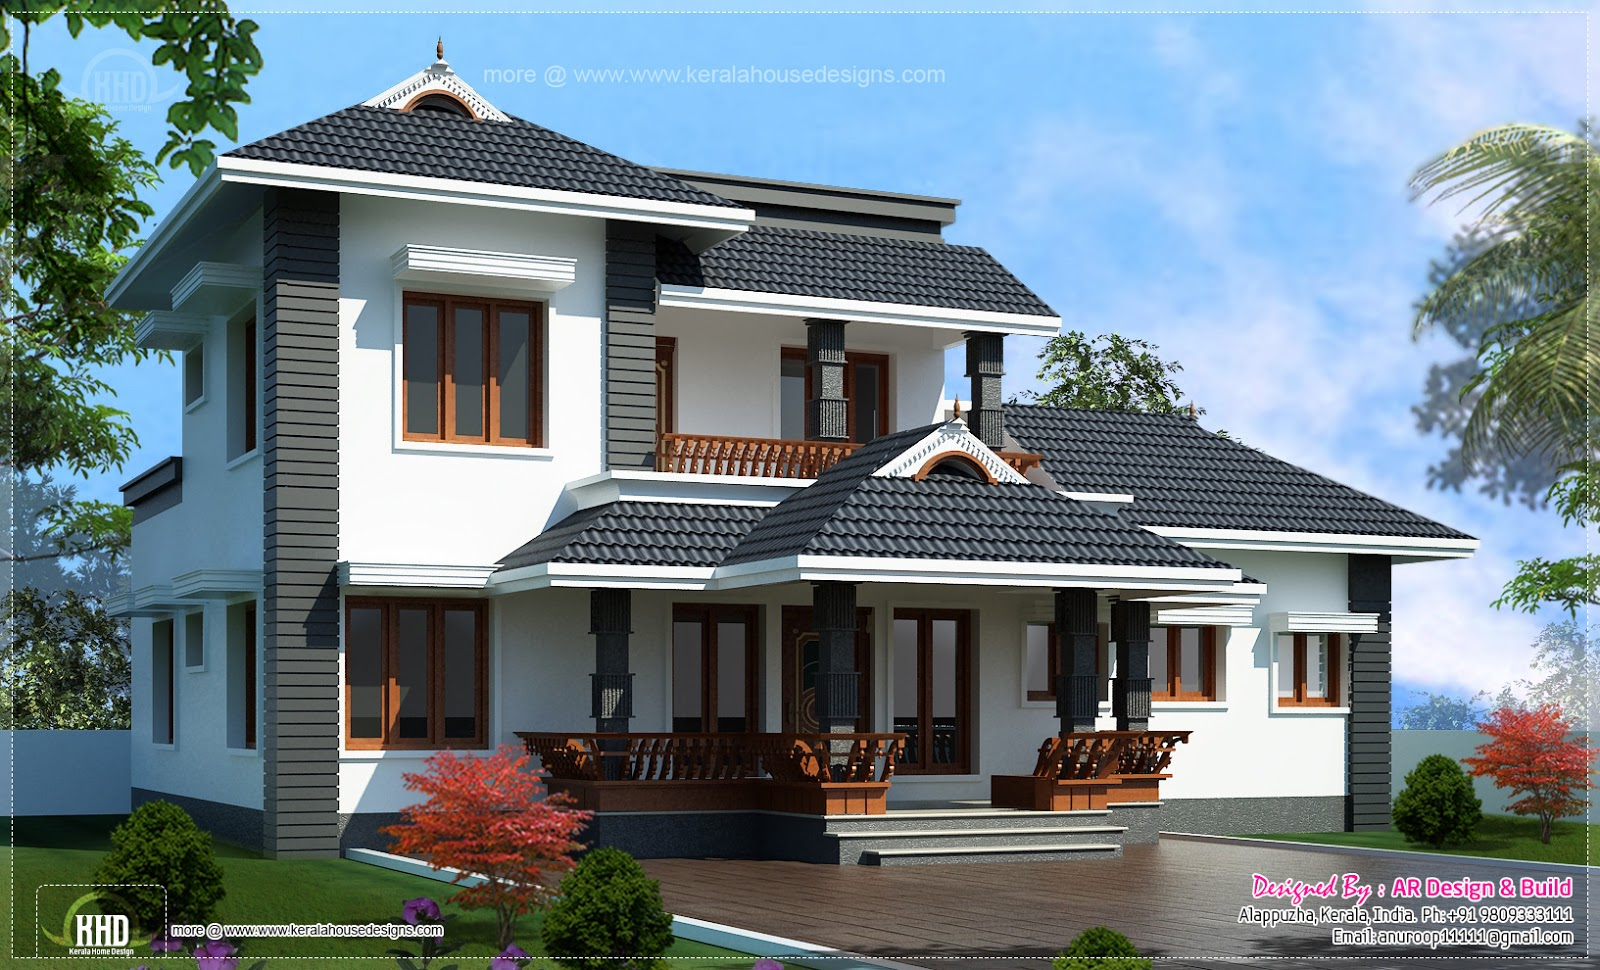 2000 4 bedroom sloping roof residence kerala for 2000 sq ft homes